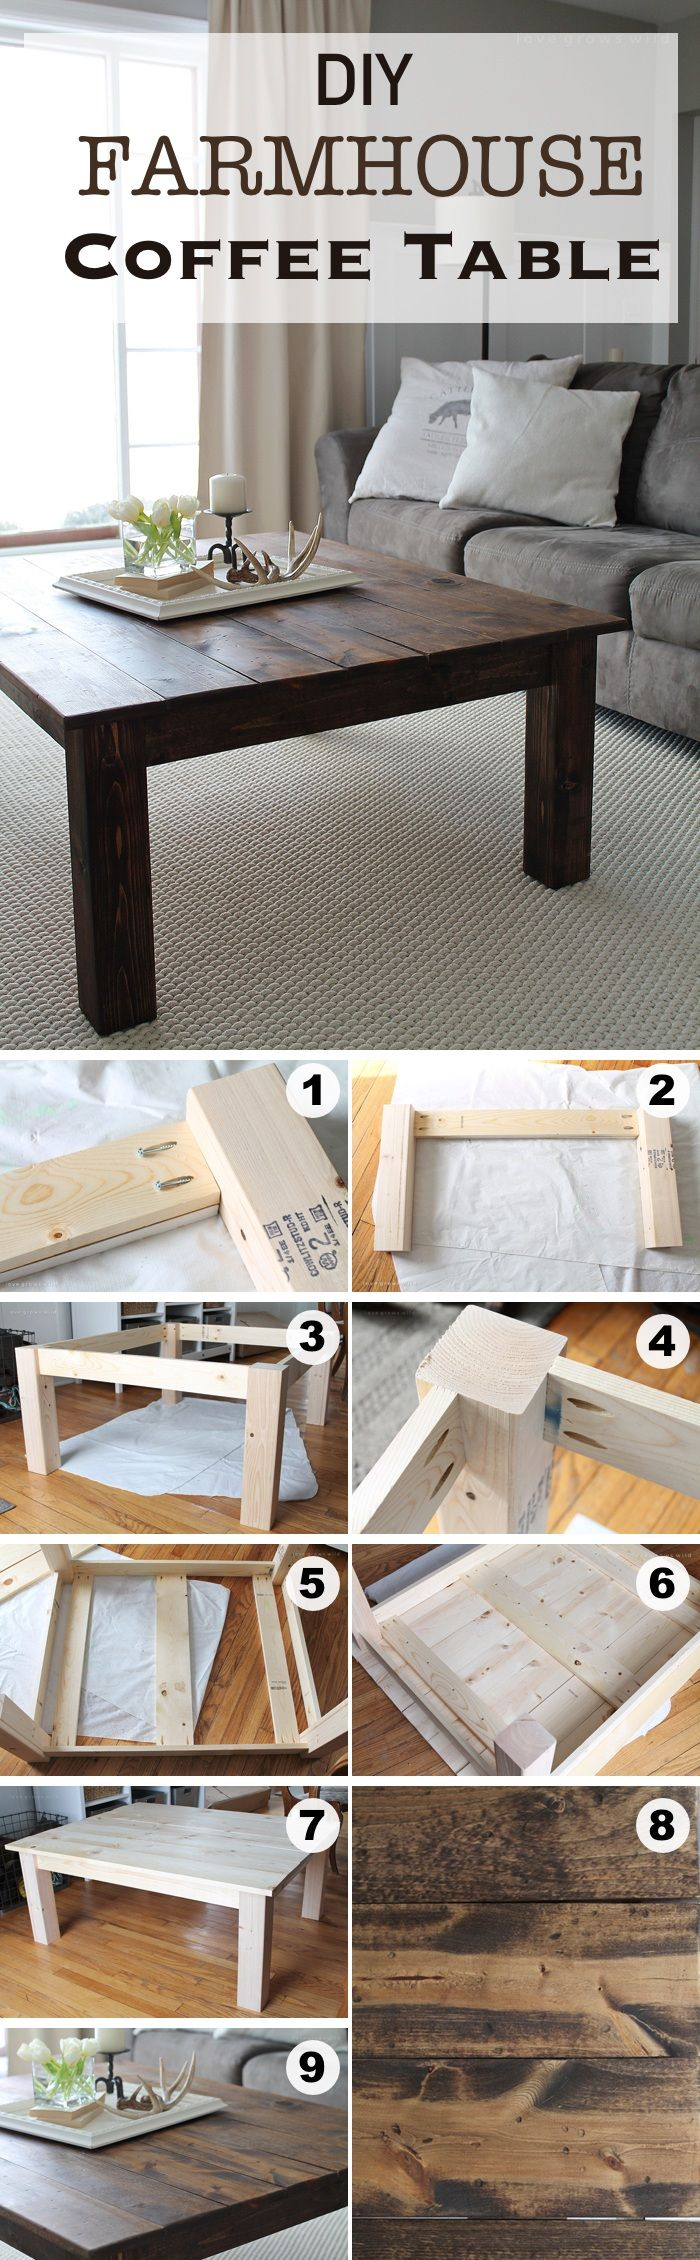 Best 25 diy coffee table ideas on pinterest diy wood table 15 creative diy coffee table ideas you can build yourself geotapseo Image collections